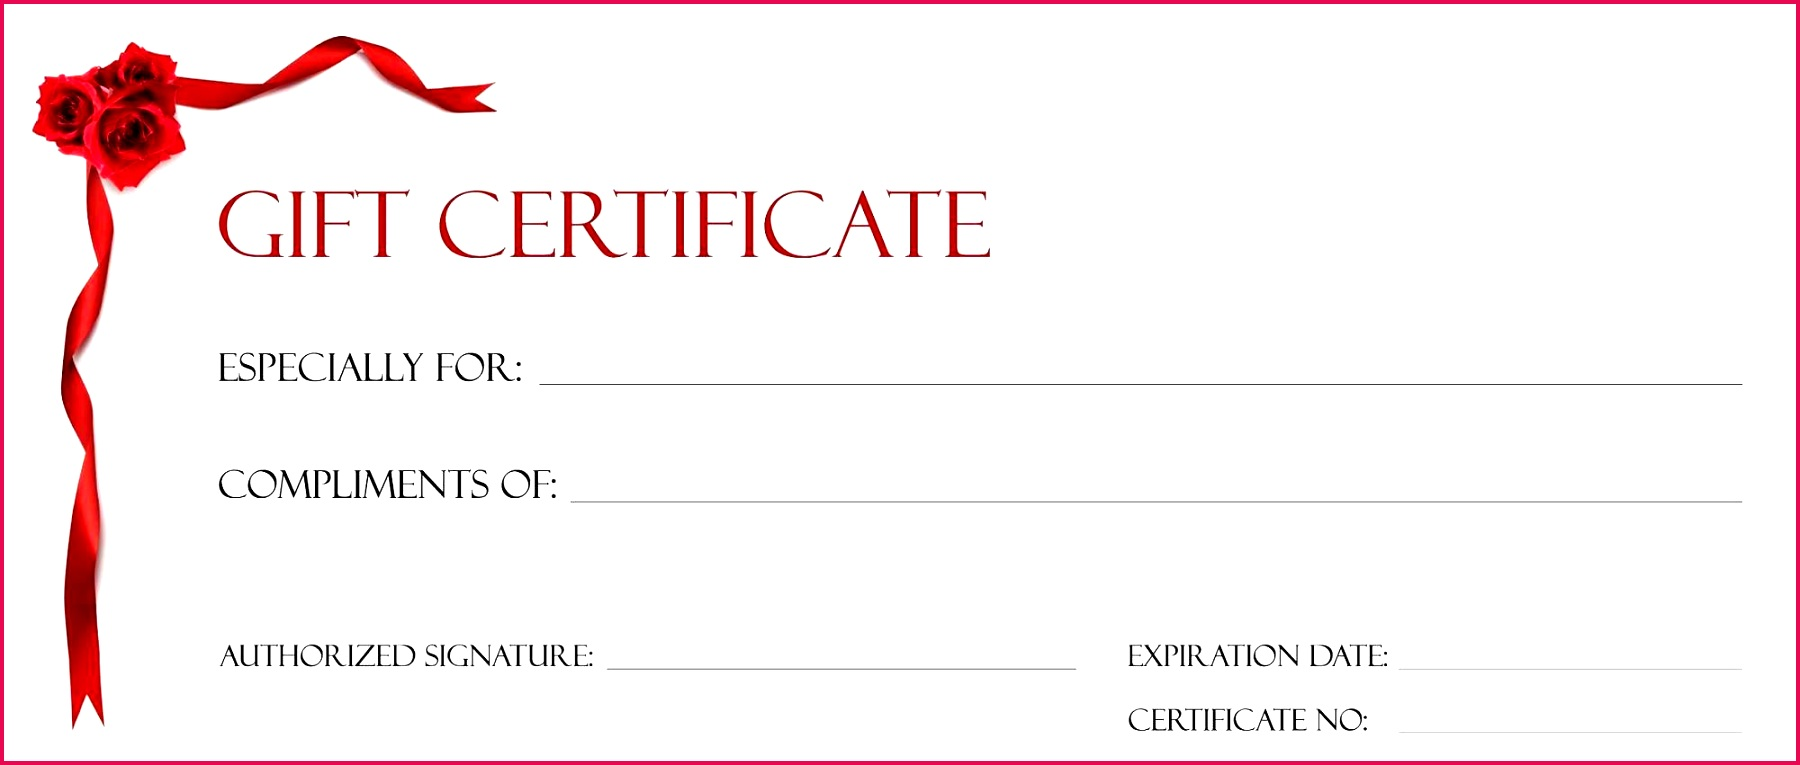 free printable christmas t certificates templates certificate forms exchange cards vouchers uk template holiday for word card holder voucher envelopes money